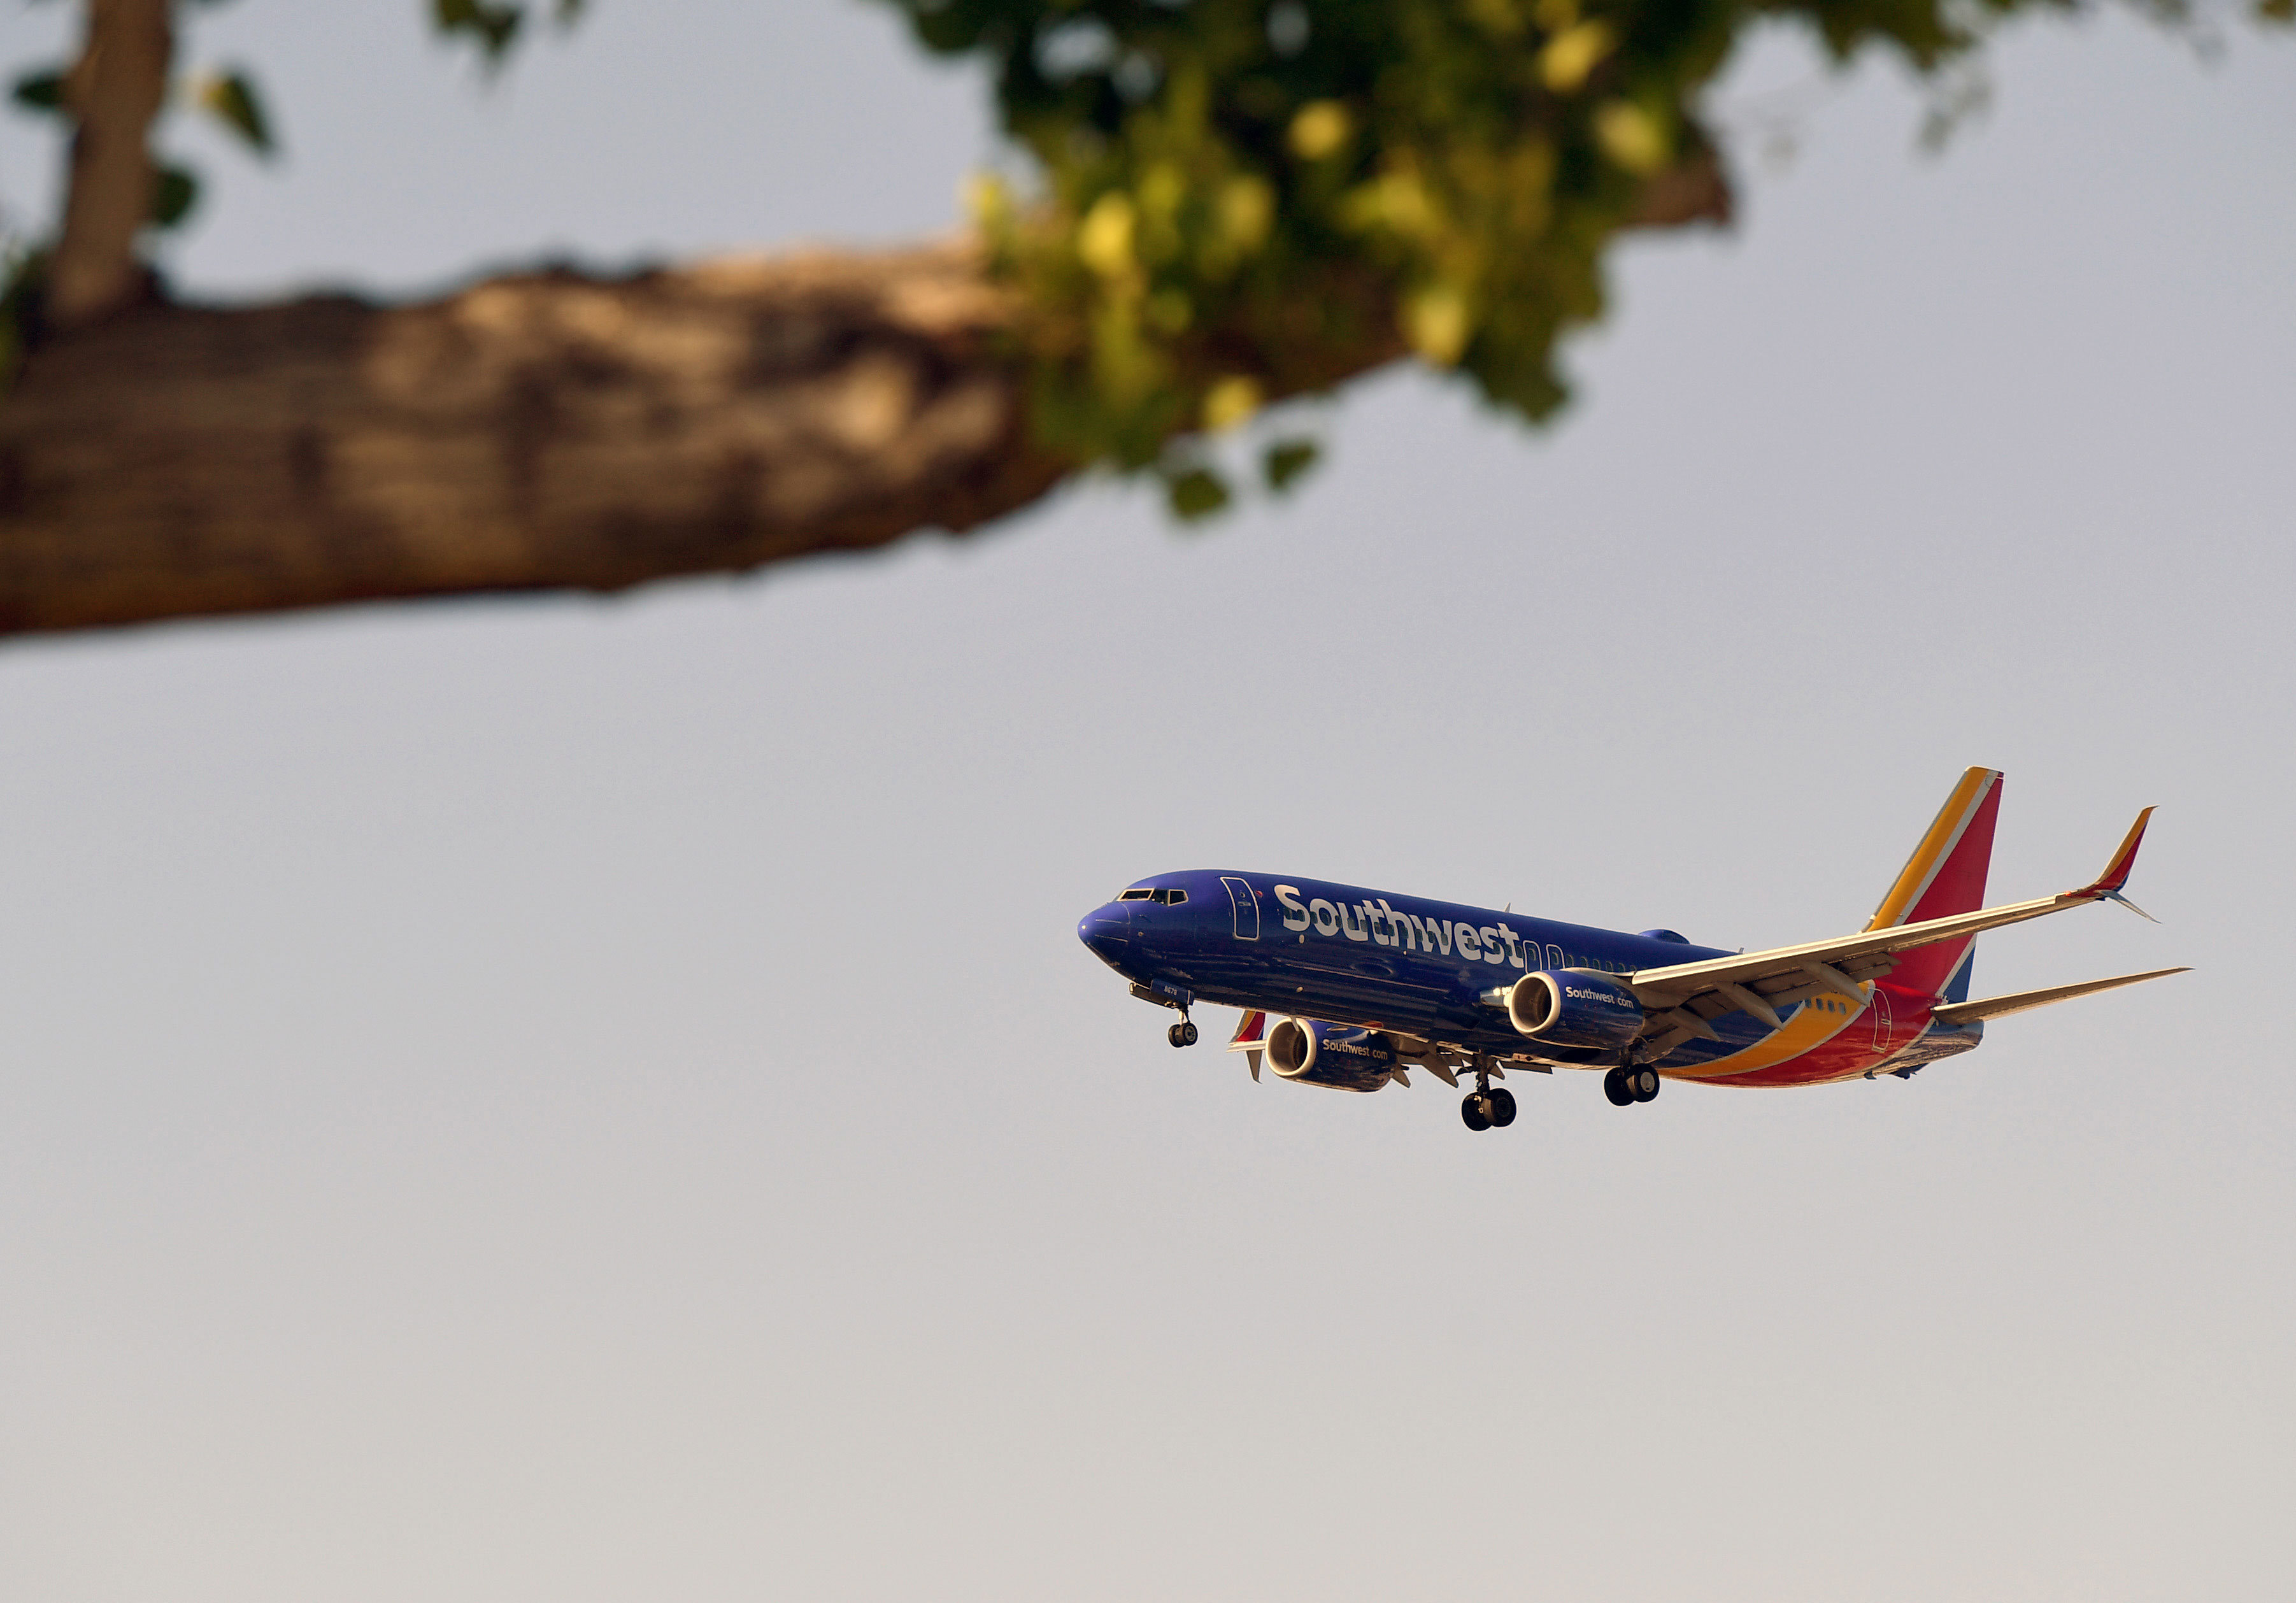 LAS VEGAS, NEVADA - MAY 25: A Southwest Airlines jet is shown behind a tree branch at Sunset Park as it comes in for a landing at McCarran International Airport on May 25, 2020 in Las Vegas, Nevada. The nation's 10th busiest airport recorded a 53% decrease in arriving and departing passengers for March compared to the same month in 2019, a drop of more than 2.3 million travelers, as the COVID-19 pandemic impacts the travel industry. (Photo by Ethan Miller/Getty Images)